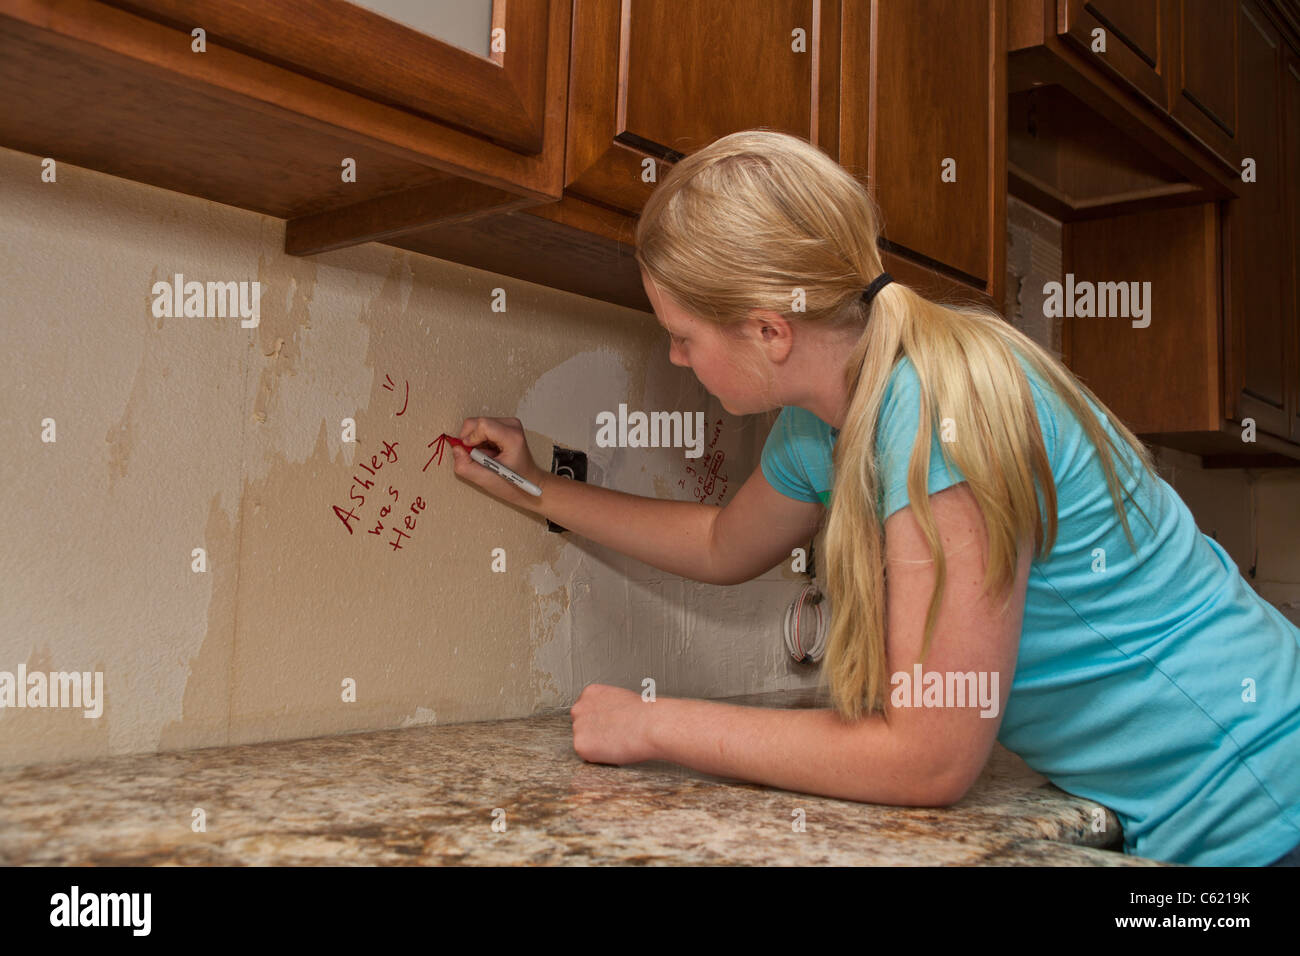 Teen girl writing on unfinished areas of kitchen remodel. MR Myrleen Pearson - Stock Image